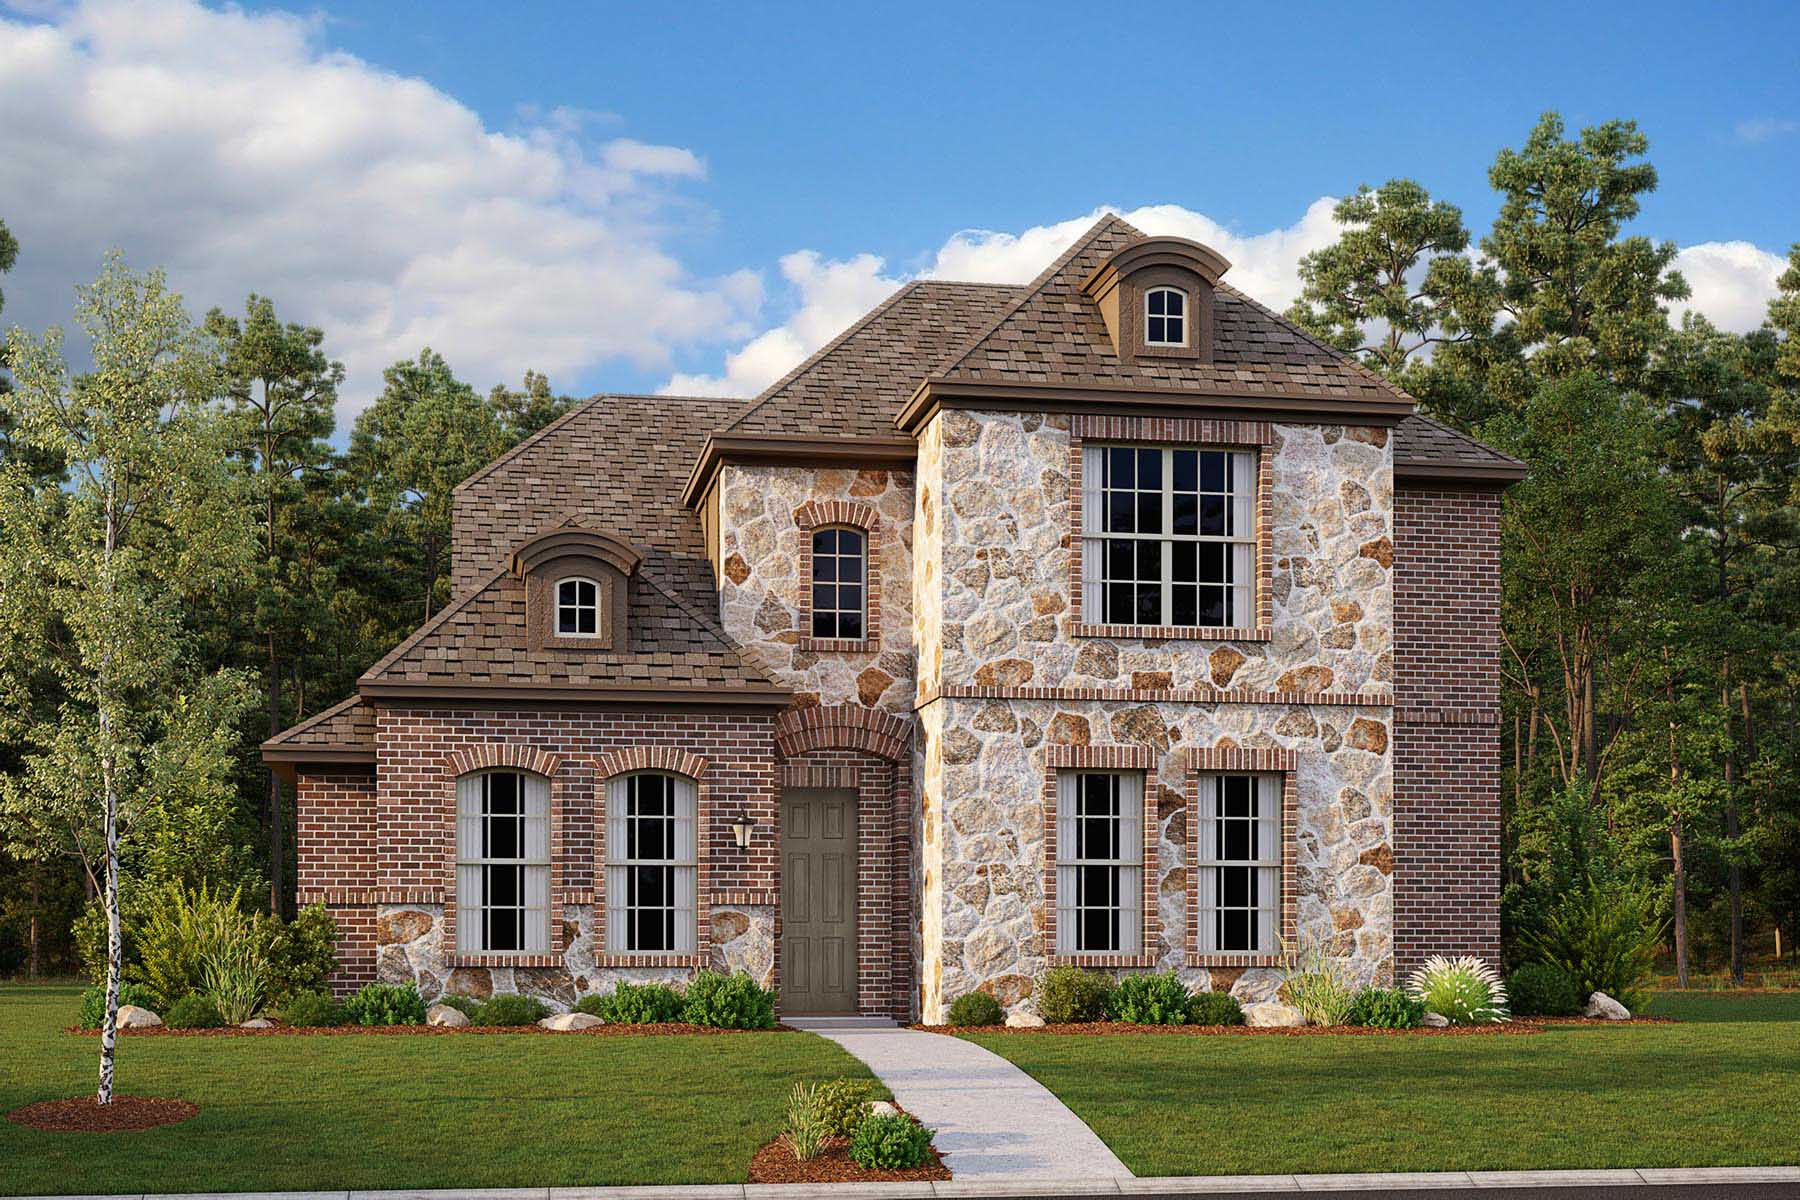 Oakhurst II Plan DAL_Oakhurst_A_ElevationExt_1800x1200 at Villages of Creekwood in Frisco Texas by Mattamy Homes